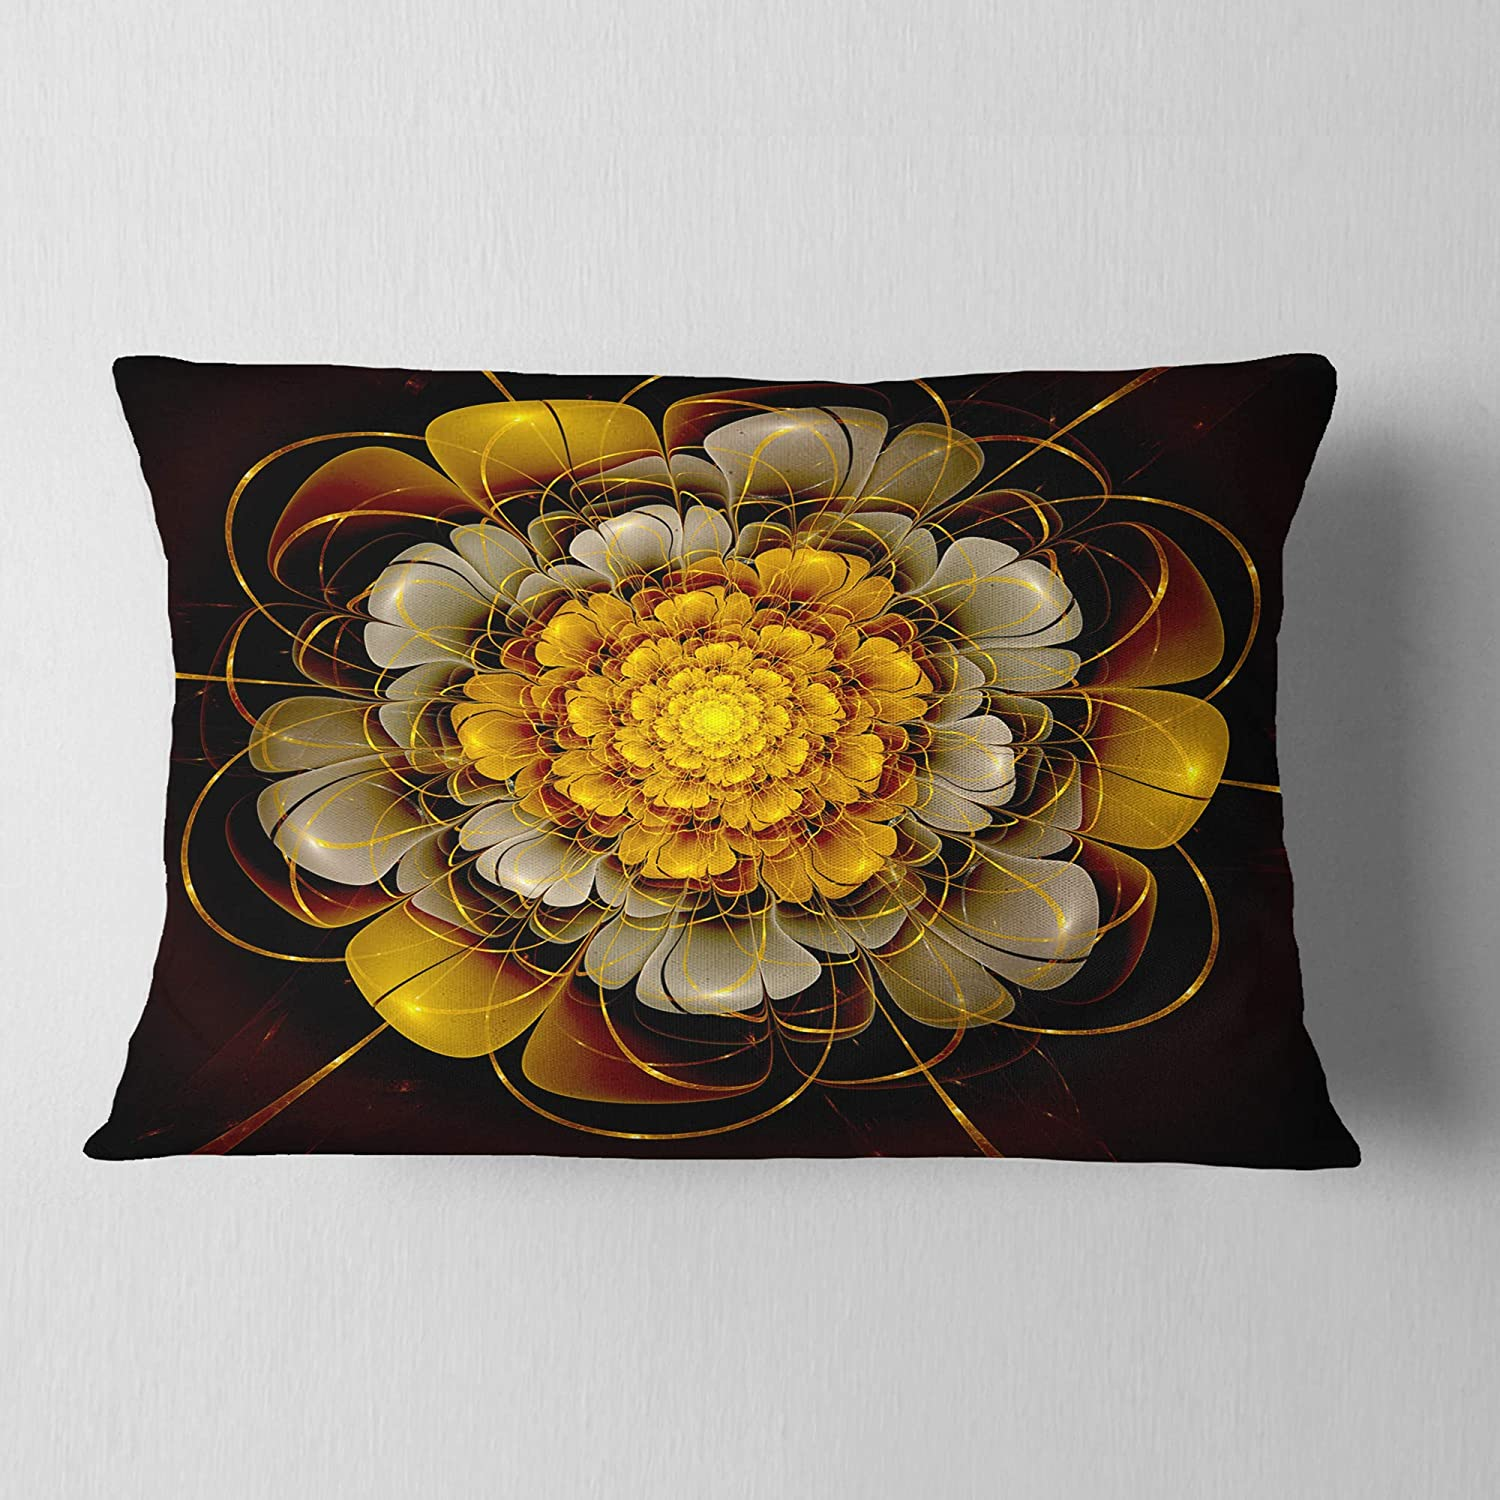 X 20 In Sofa Throw Pillow 12 In Insert Printed On Both Side In Designart Cu7248